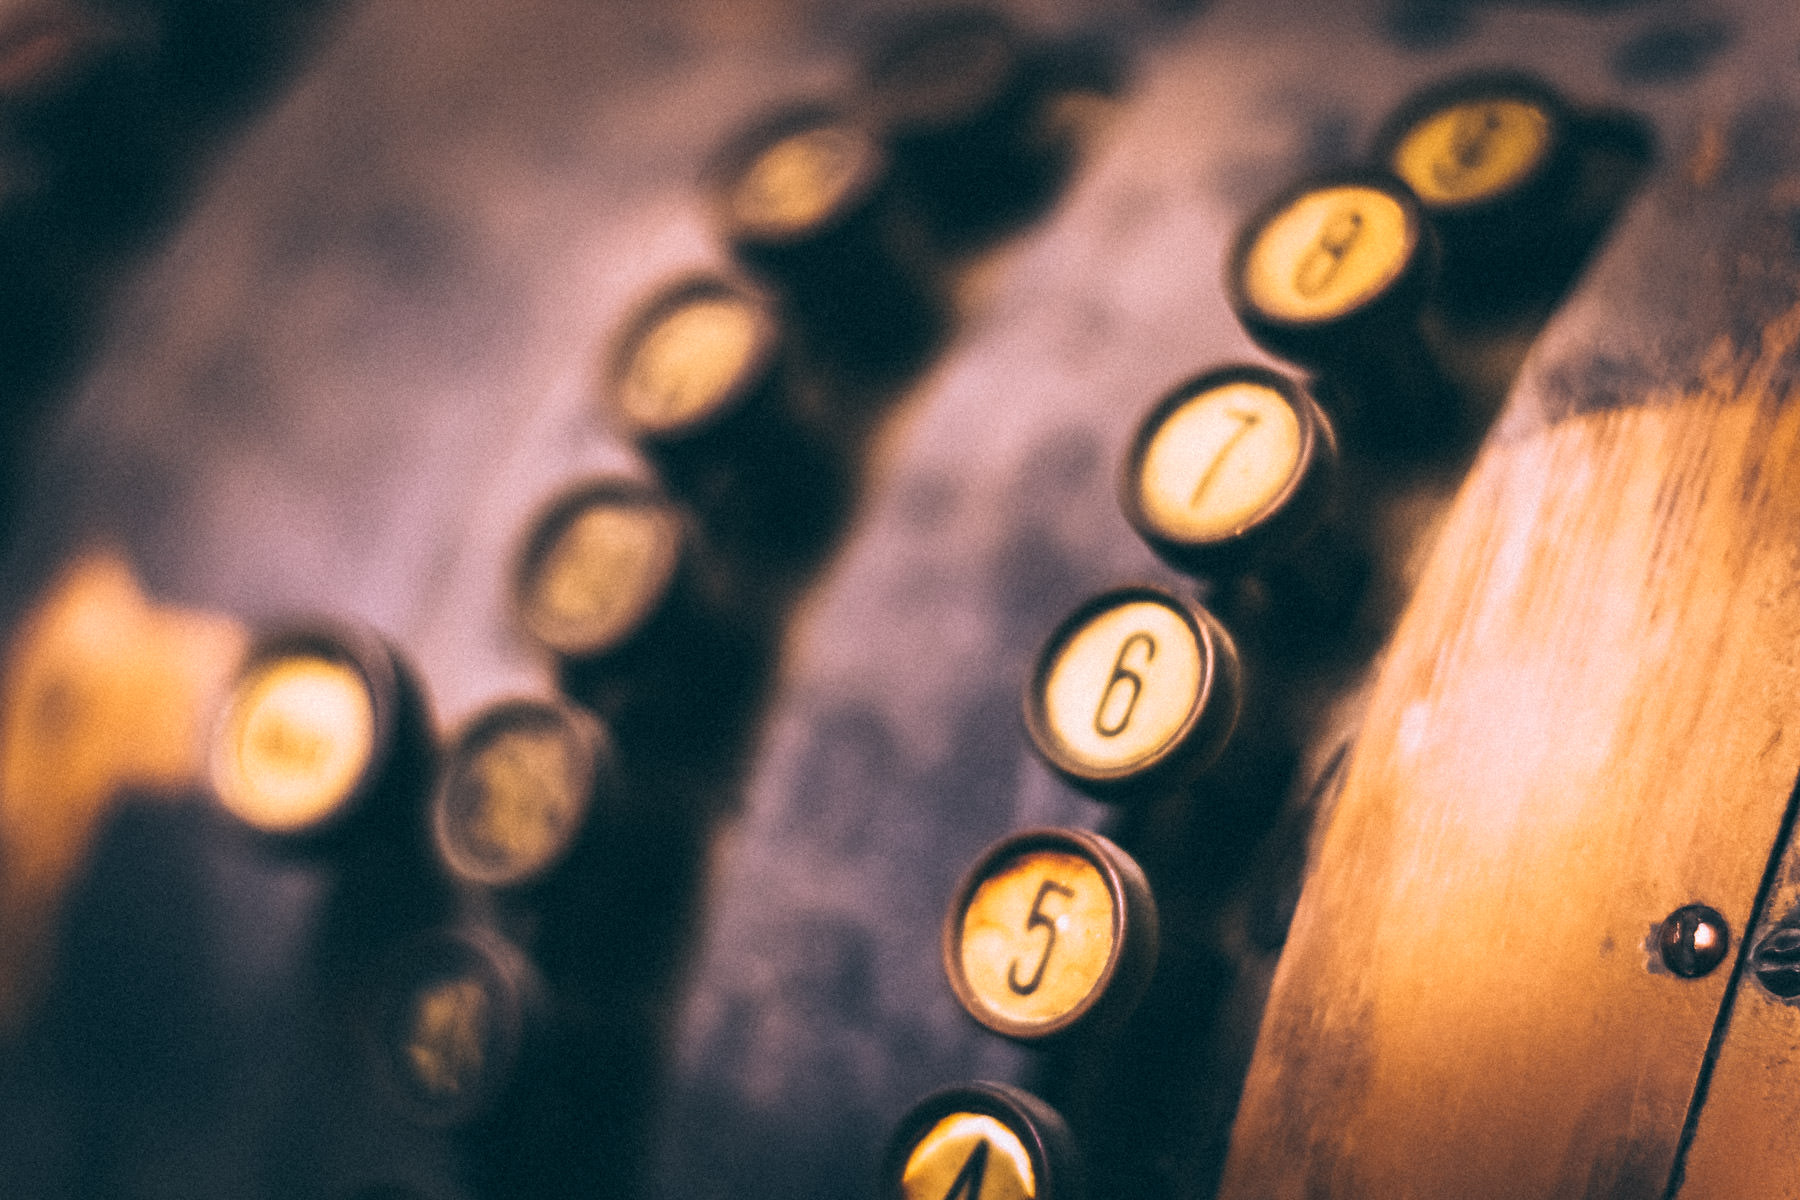 Buttons on an antique cash register in Jefferson, Texas.